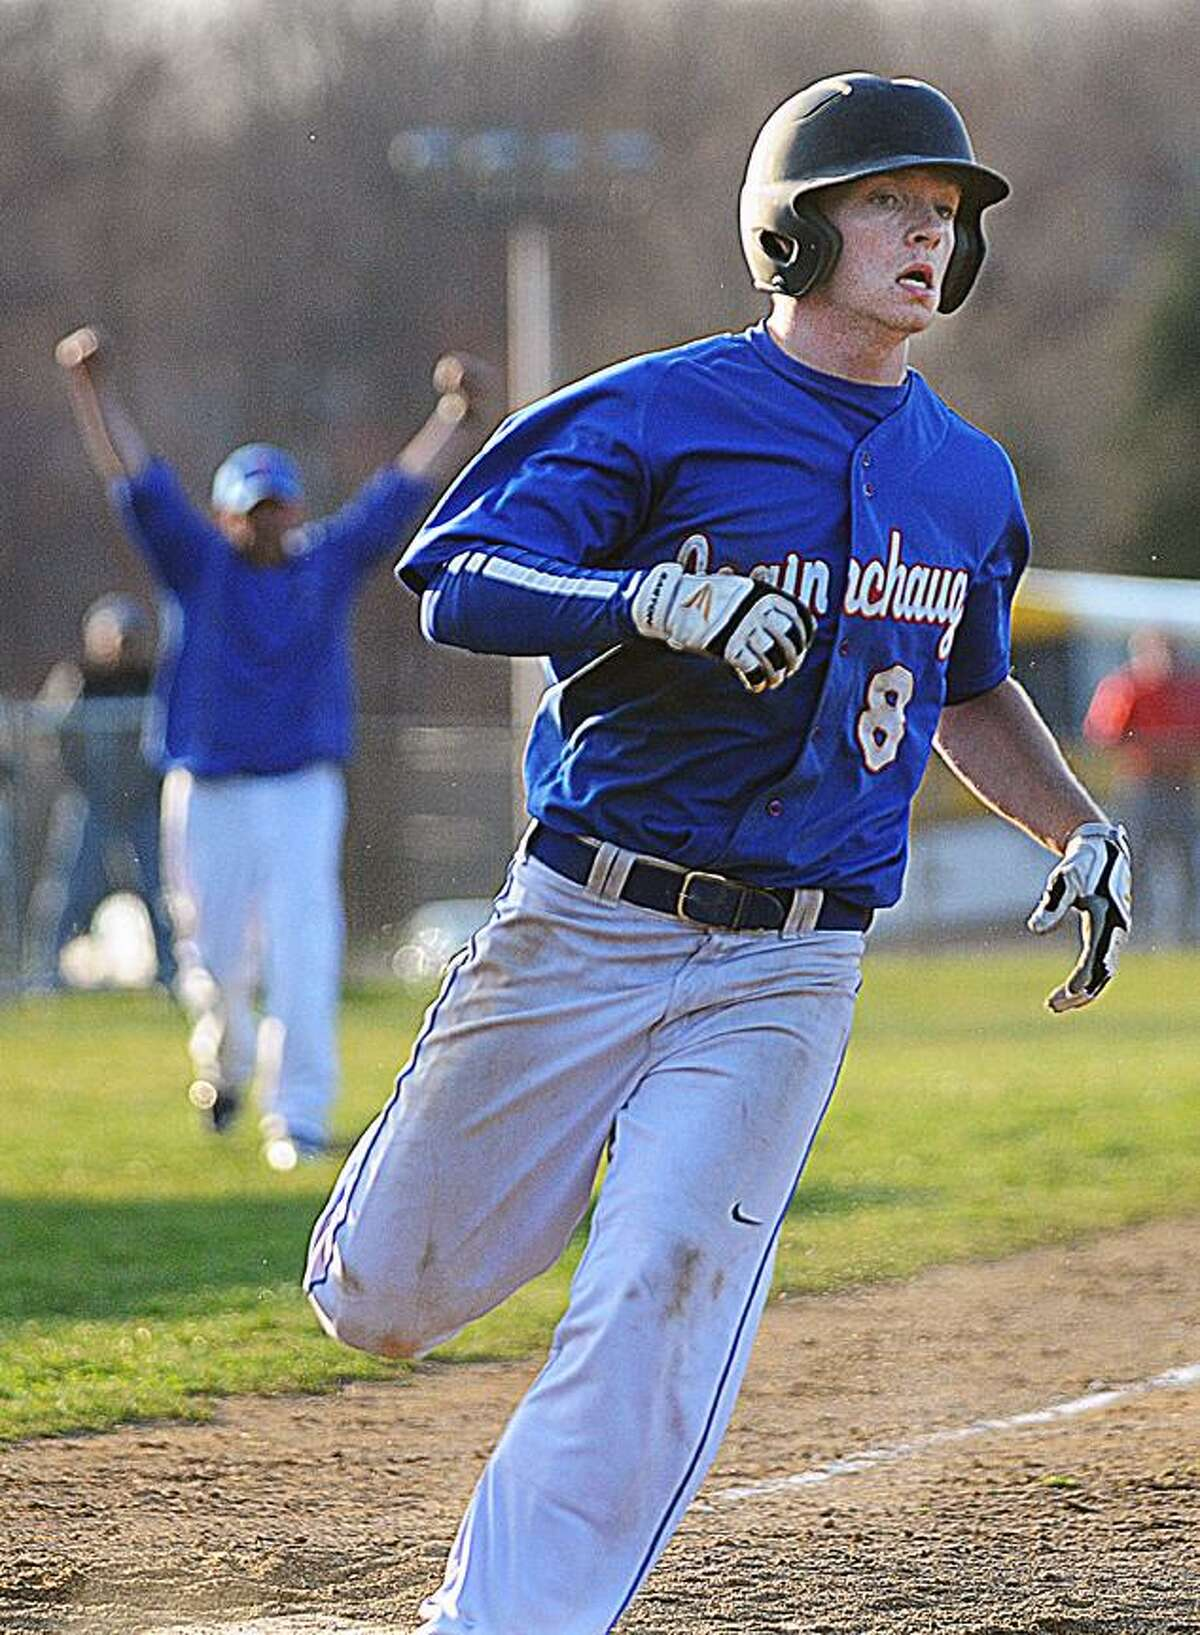 Catherine Avalone/The Middletown Press Coginchaug junior center fielder Christian Adams scores the winning run against Old Saybrook in the tenth inning to win their second walk off on a Monday afternoon. The Blue Devils defeated Old Saybrook 3-2 in Durham.